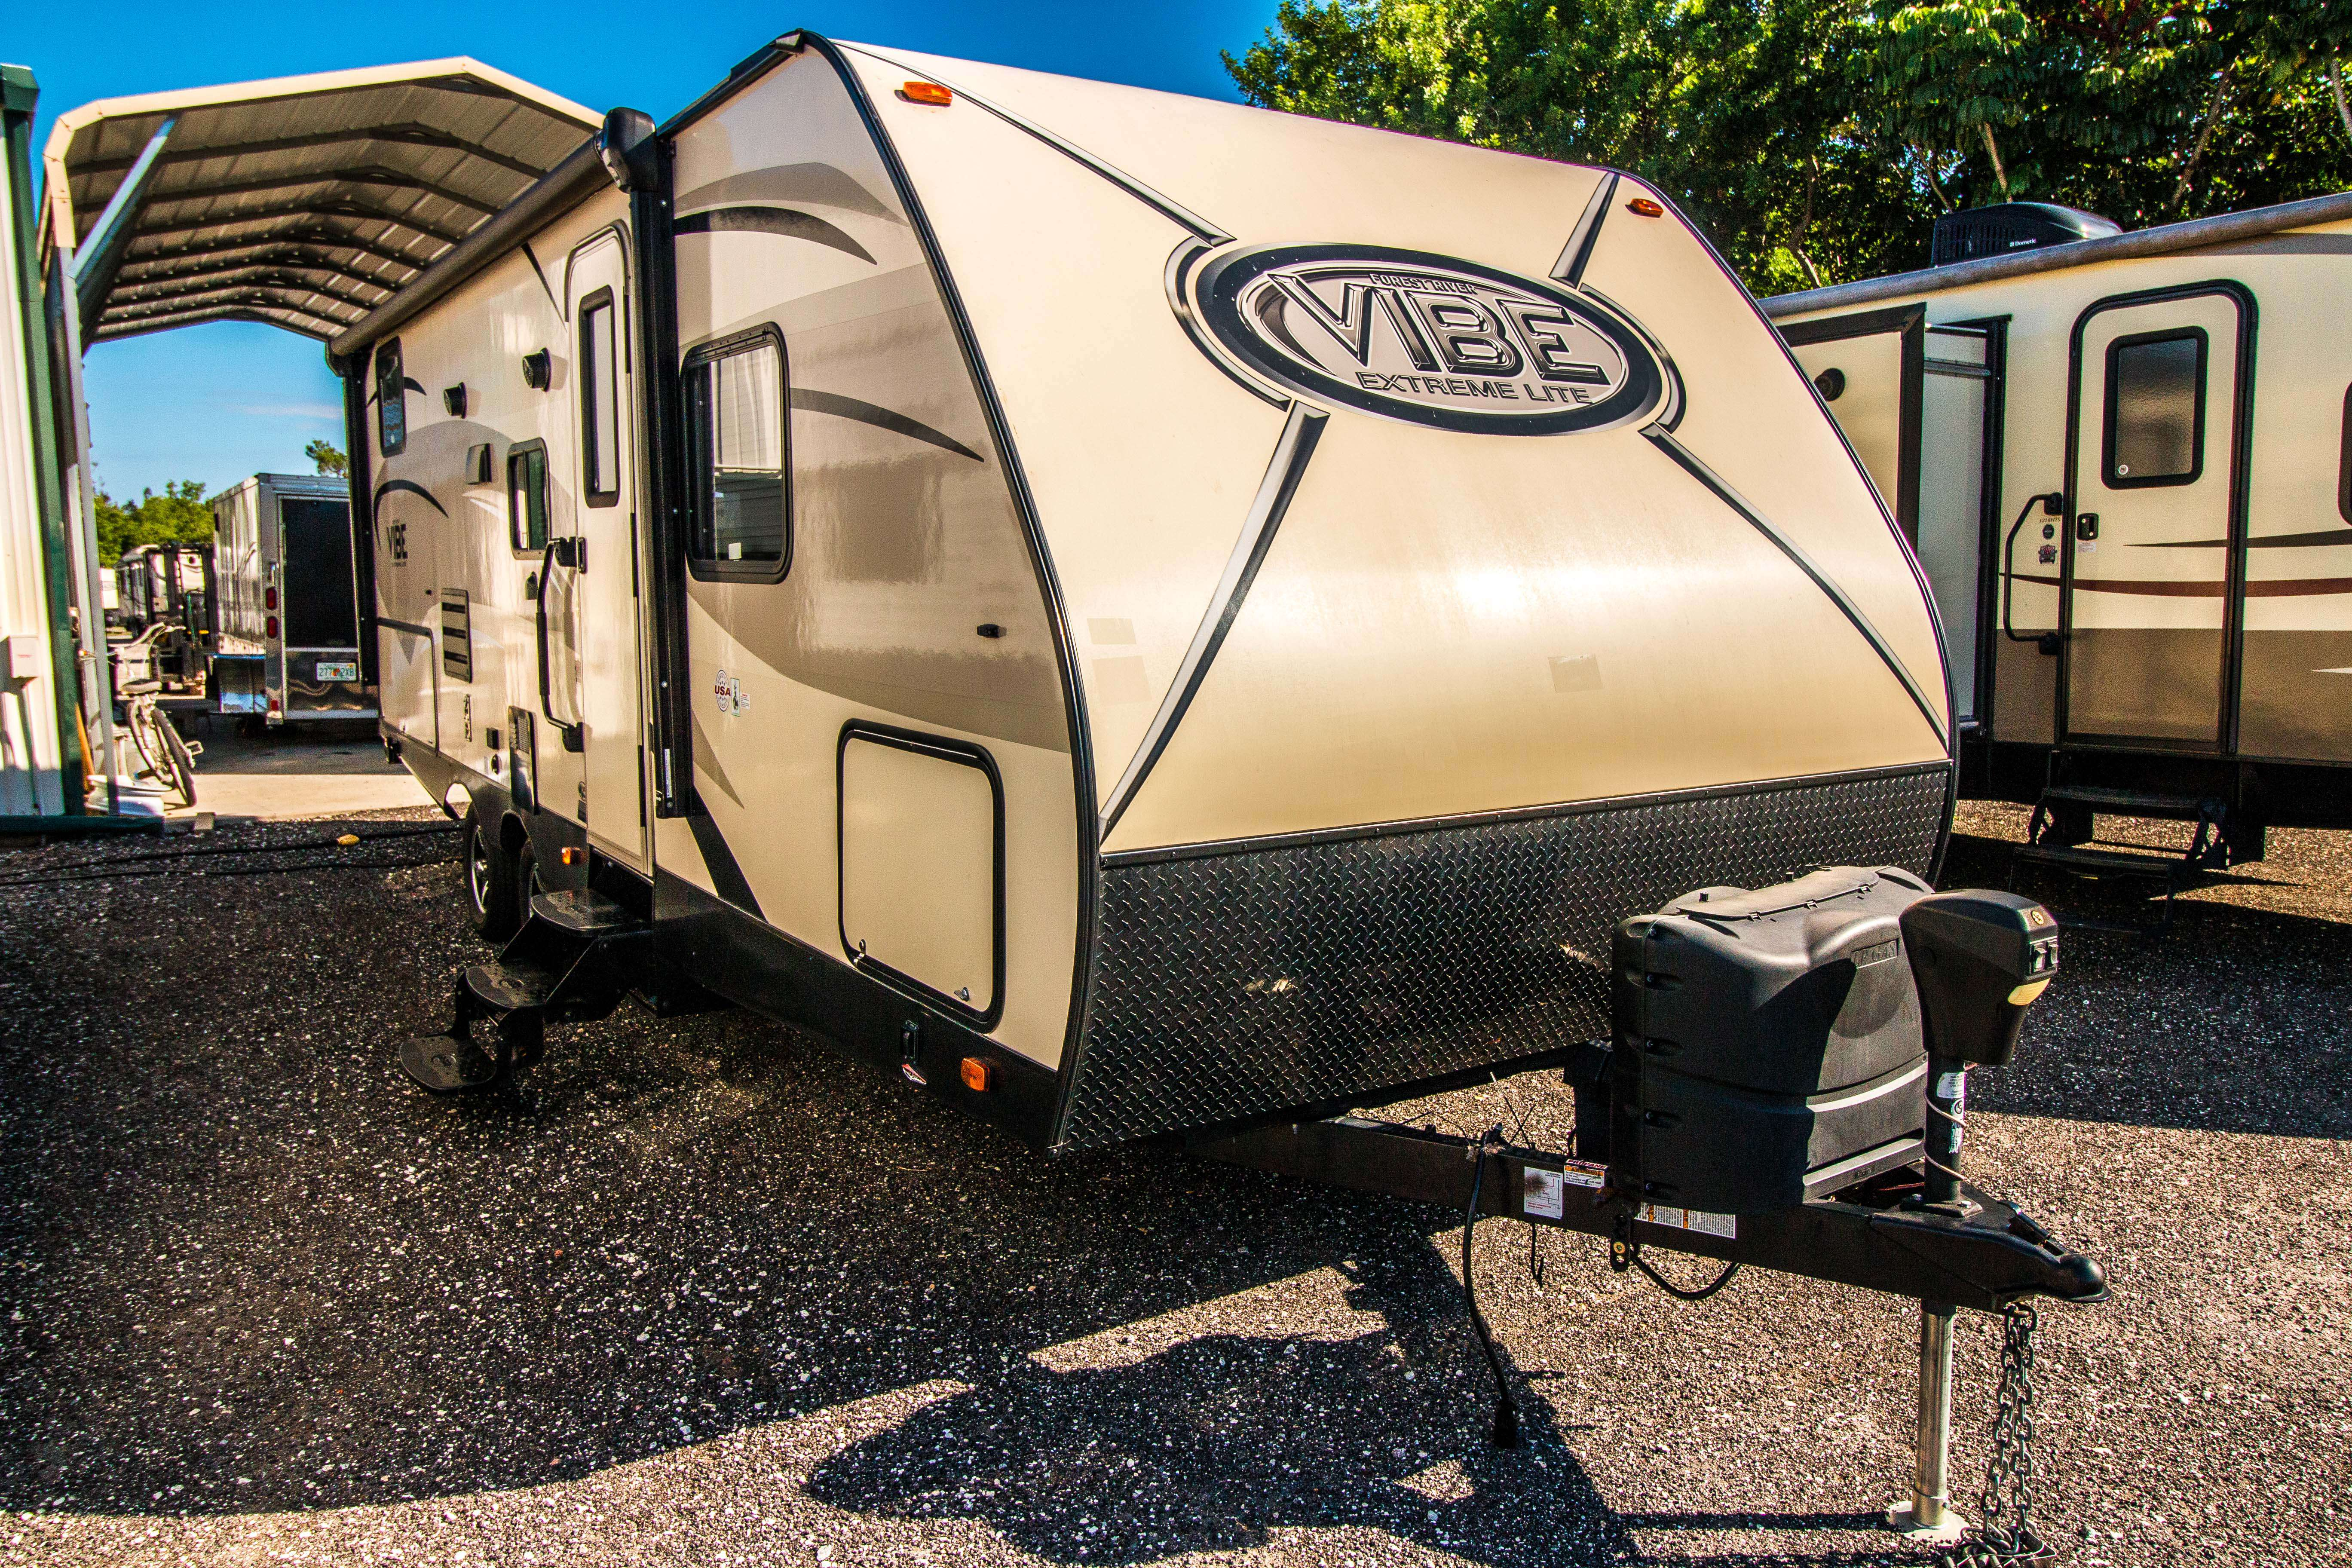 1 slide out travel trailer Vibe 234BHS